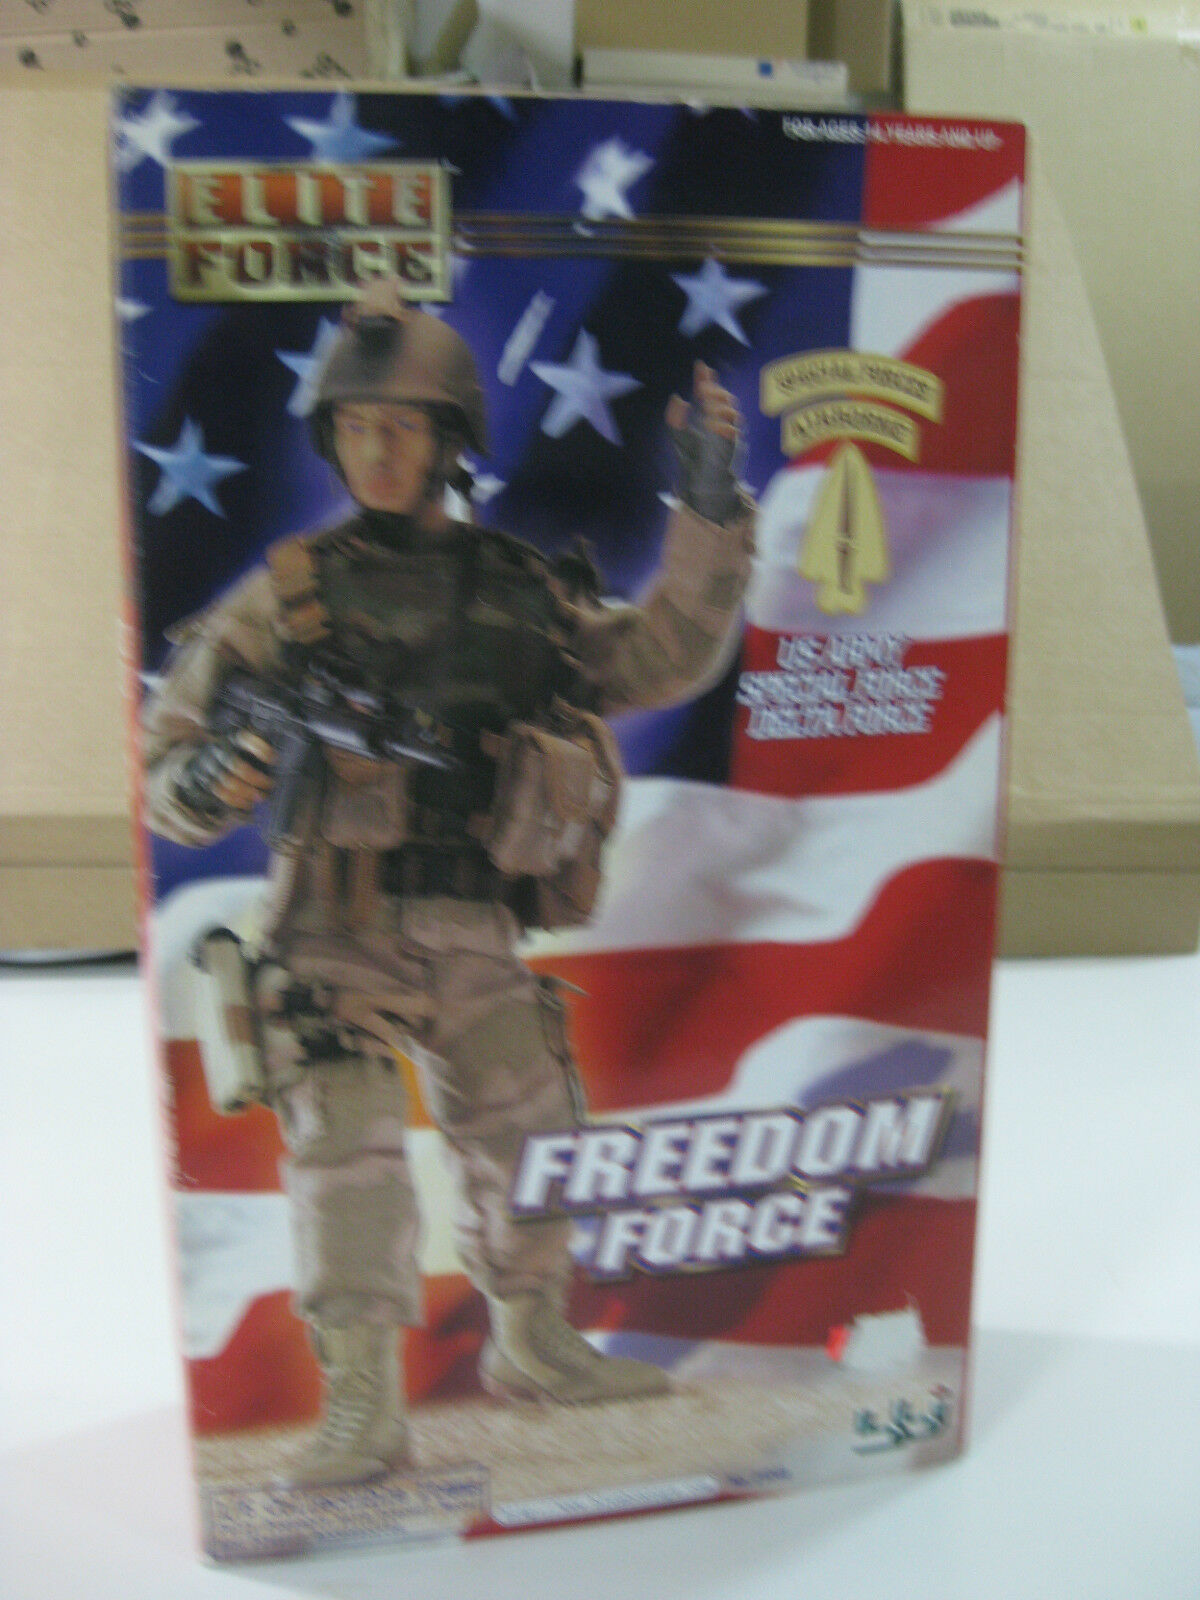 ELITE FORCE BBI-US ARMY SPECIAL FORCE DELTA FORCE-SPECIAL FORCES AIRBONE-E 1 6